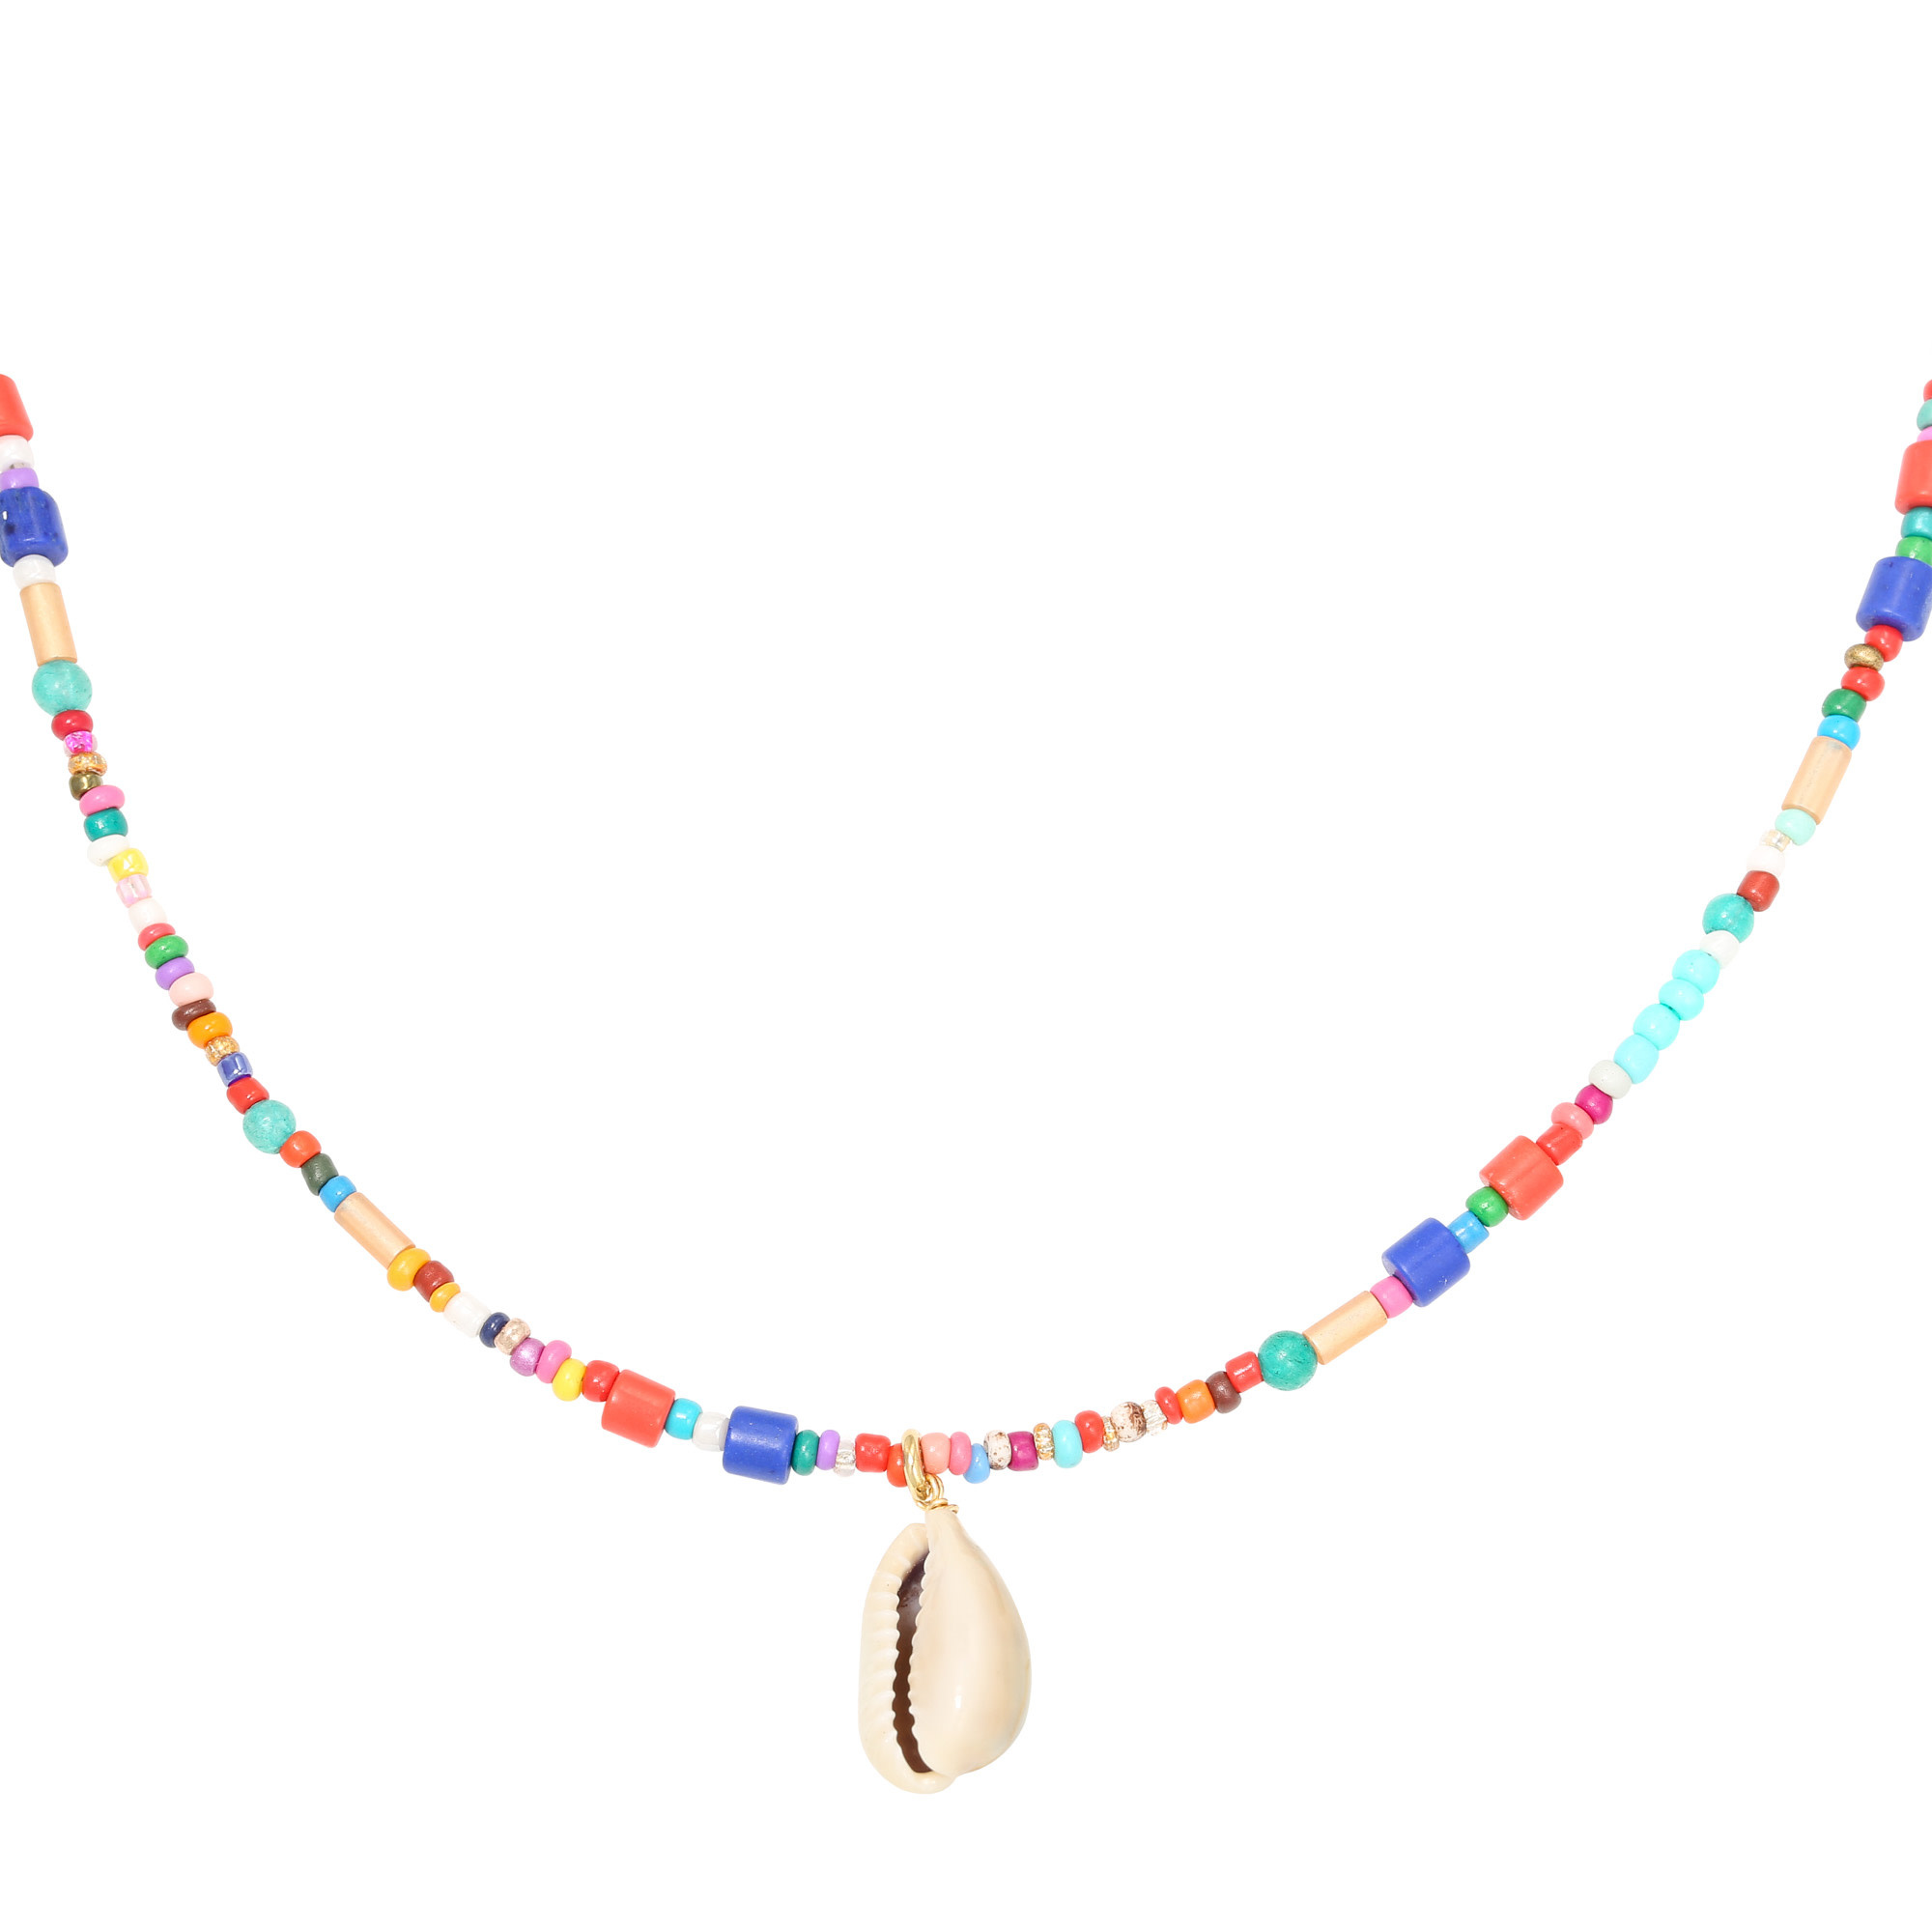 With love Necklace 'at the beach'